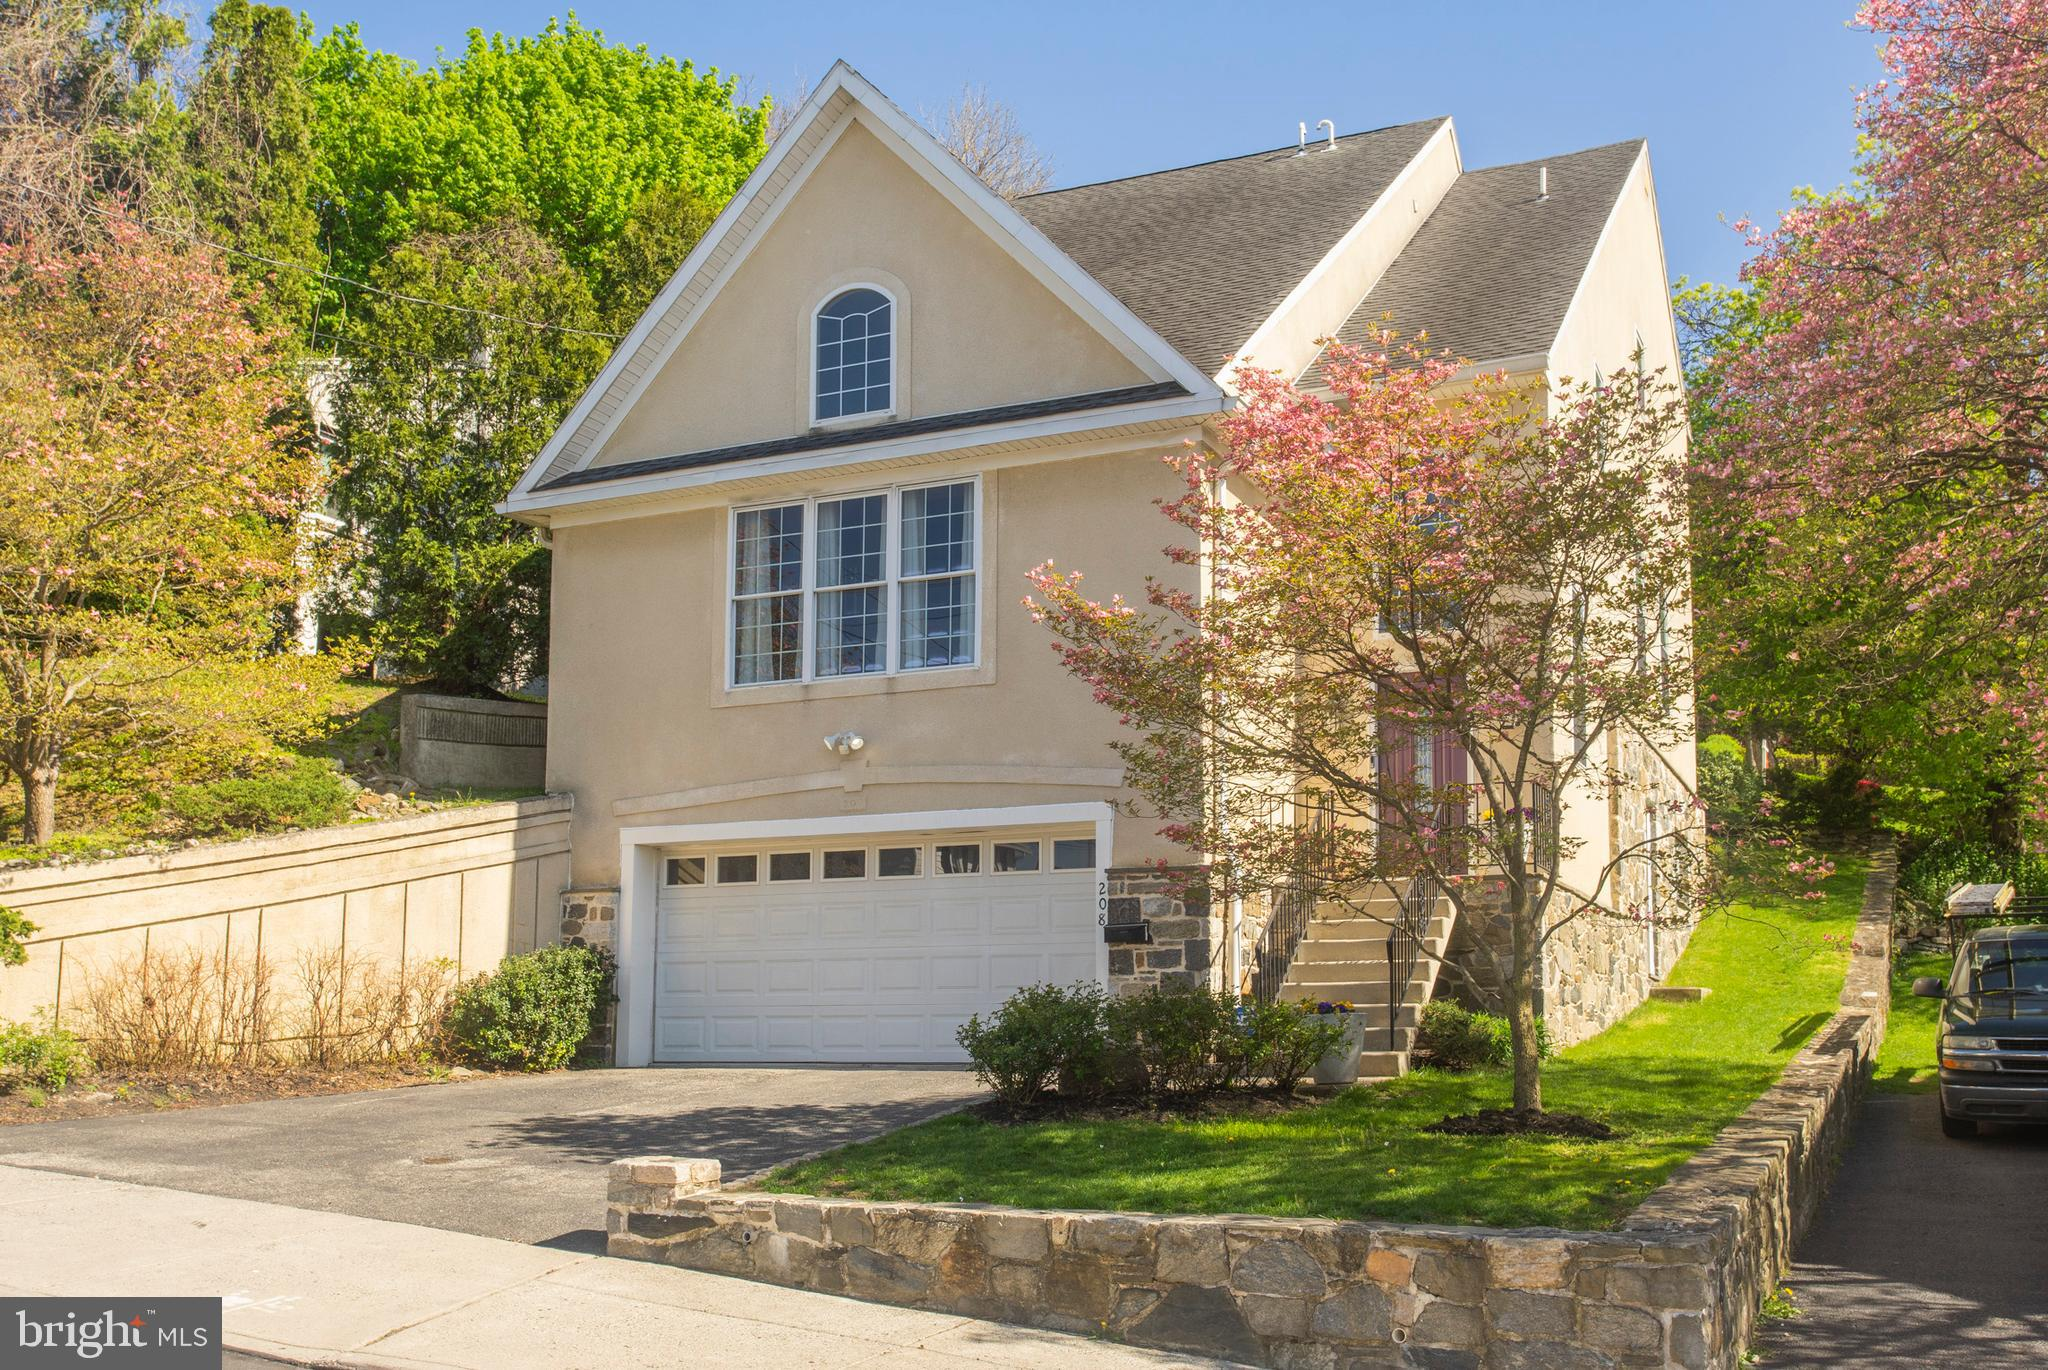 """Of all the neighborhoods in the Lower Merion School District, it's hard to find an easier commute and quicker access to I-76 than Bala Cynwyd's iconic Belmont Hills neighborhood. Built in 2003, this 2546 sq ft, 3 bed/2.2 bath single-family home can actually be considered """"newer"""" construction by local Main Line standards.   This contemporary Colonial-style home also boasts a parking abundance that's rare for the neighborhood, with a wide private driveway and an oversized two-car garage.   Once you're inside, you'll be struck by the dramatic, high-ceilinged entrance hall, freshly painted walls, and beautiful hardwood floors. The large eat-in kitchen features a gas range, double sink, and large peninsula with seating. The eating area overlooks a light-filled living room with cathedral ceilings and a fireplace. Also on the first floor is a powder room, a den/office, and a roomy family room with a pass-through to the kitchen and access to the paver patio out back.  Upstairs is the main bedroom suite, with a large walk-in closet and en suite with double sinks and walk-in shower. The second floor has two additional bedrooms, a full hall bath, and a laundry closet with a full-sized washer and dryer.   One of the home's key features is the huge flexible space in the walkout lower level. With its wet bar, powder room and storage area, this additional living space has potential as entertainment space, a playroom, or media room. As it has a separate entrance and some privacy from the rest of the home, this ground-level space could easily be converted to a fourth bedroom, or an in-law, guest, or au pair suite.  Other highlights include: Central AC, an ADT security system, pulldown attic access, hardwood floors and freshly painted walls through much of the house.  Note:  Three new interior doors have been ordered, to be installed after May 17"""